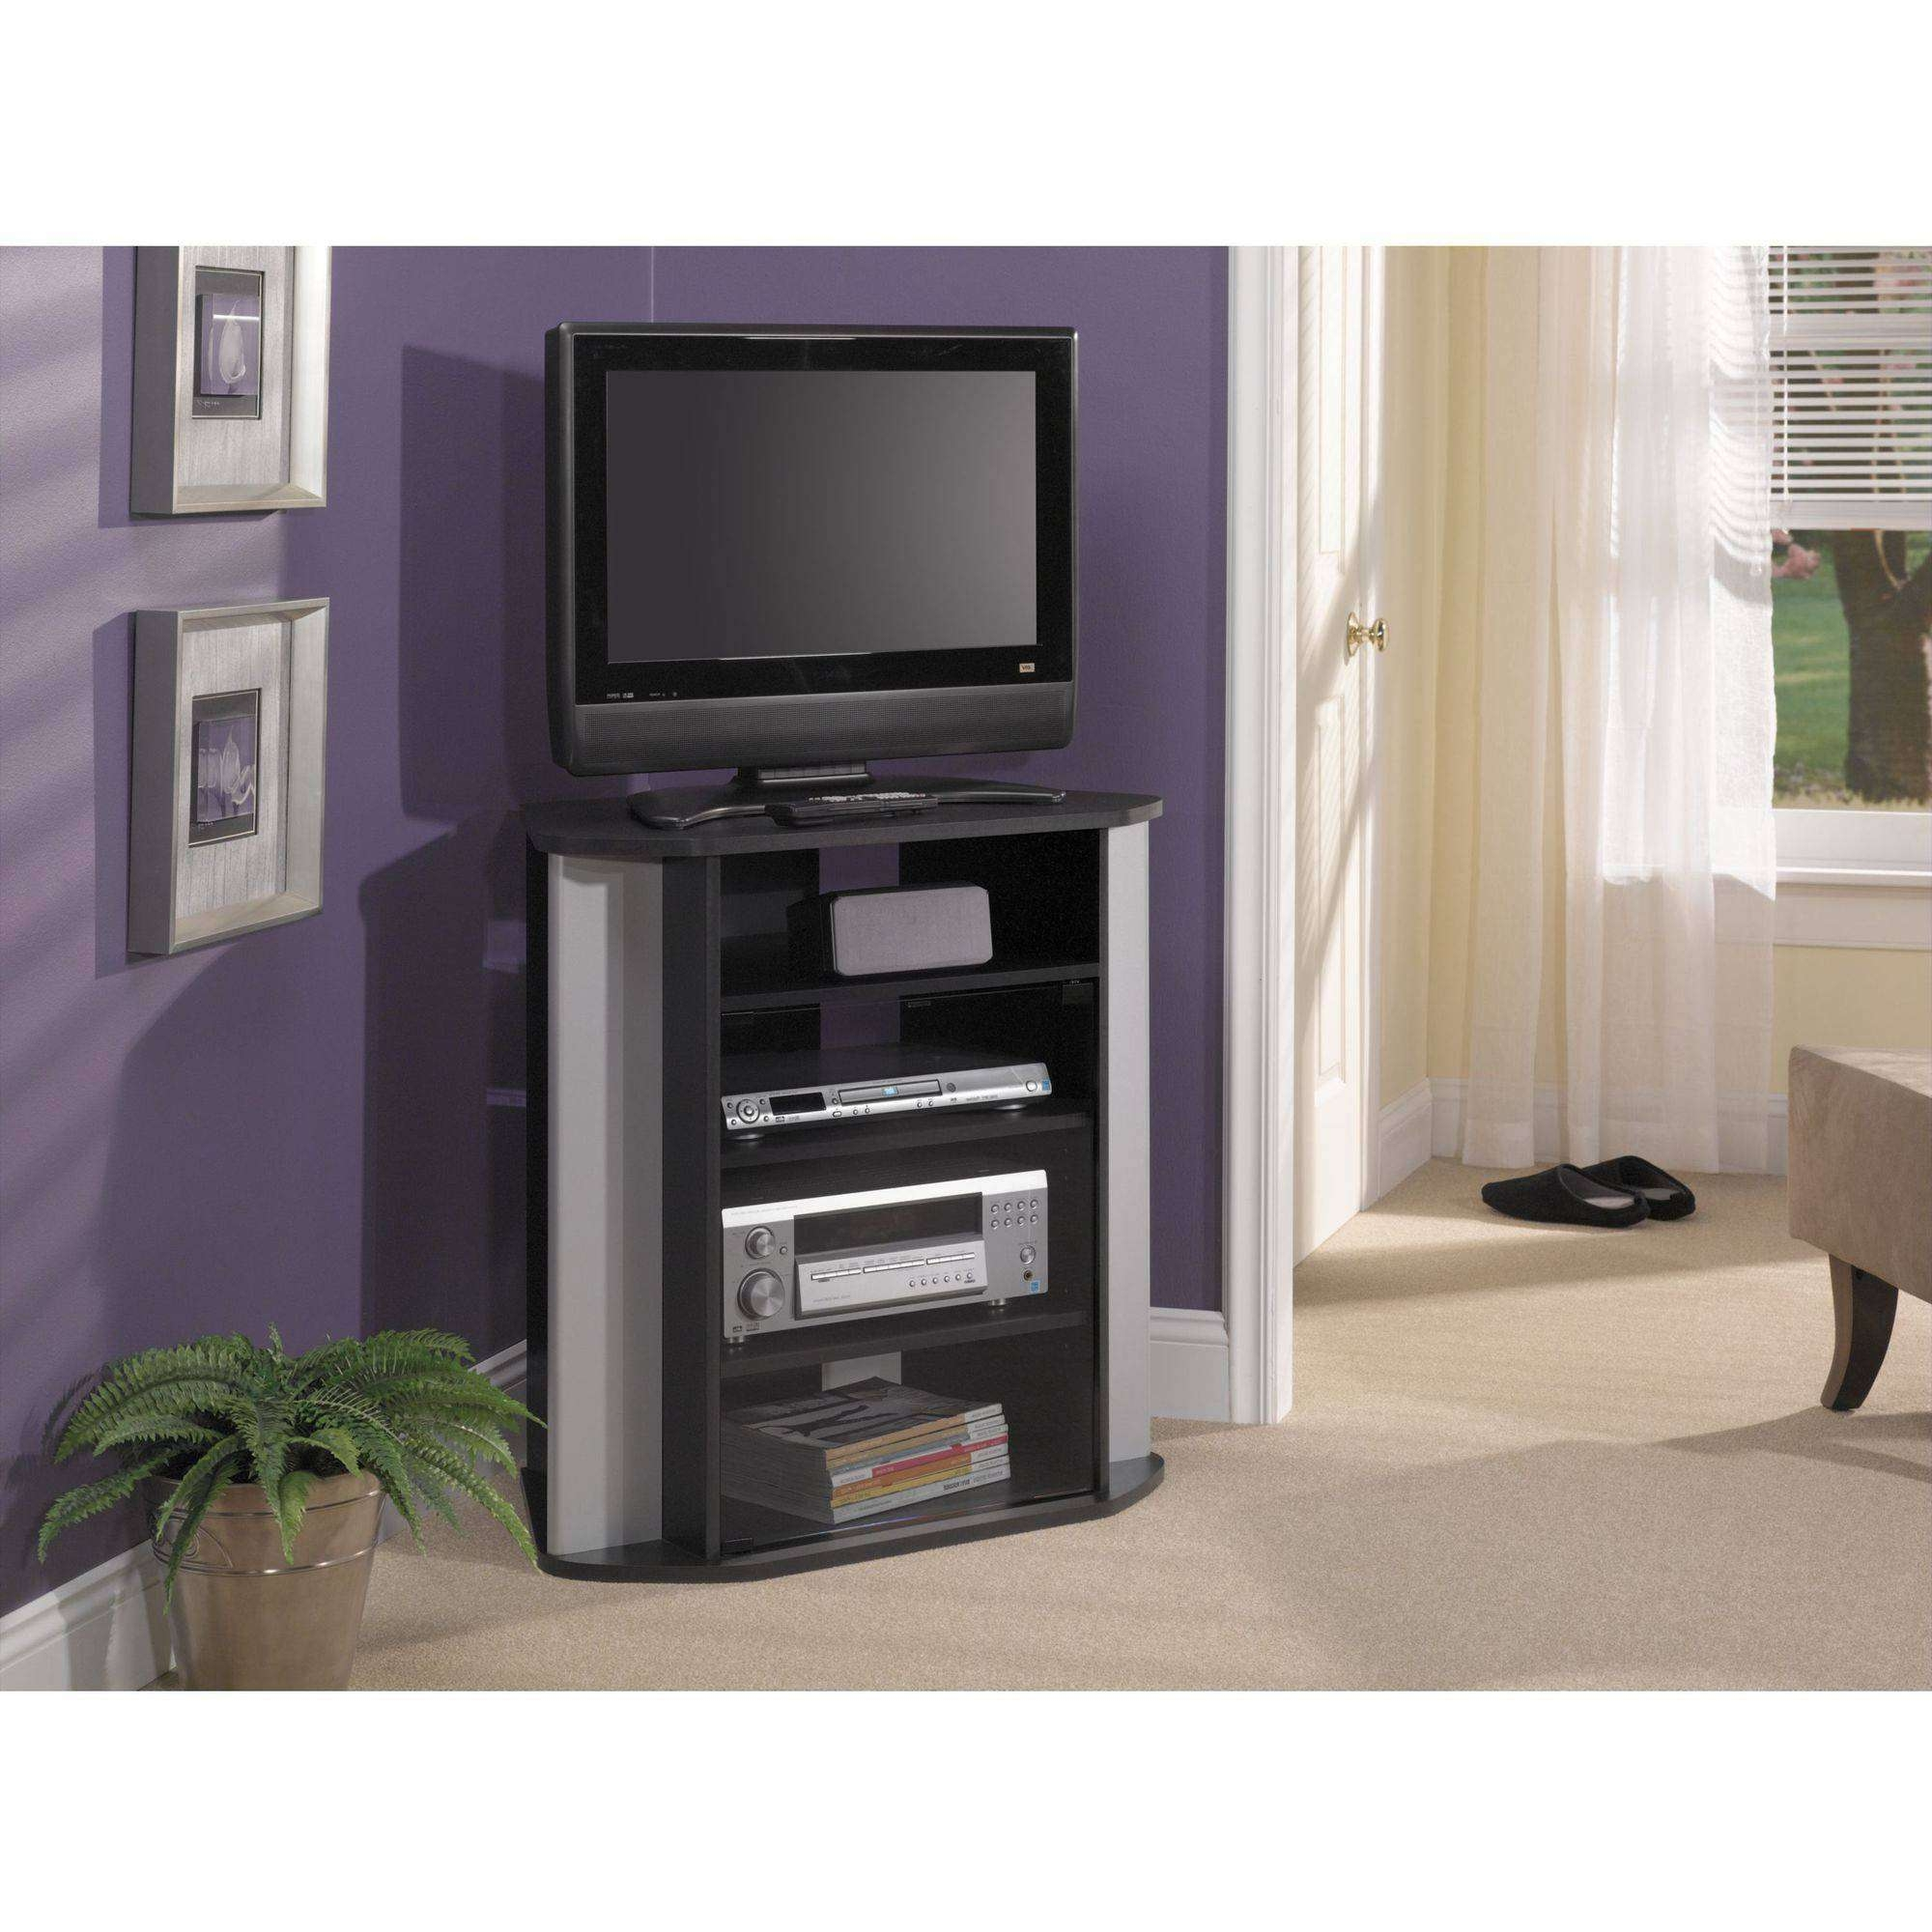 Tv Stand : Black Corner Tv Stands For Small Spaces With Glass In Black Corner Tv Cabinets With Glass Doors (View 7 of 20)